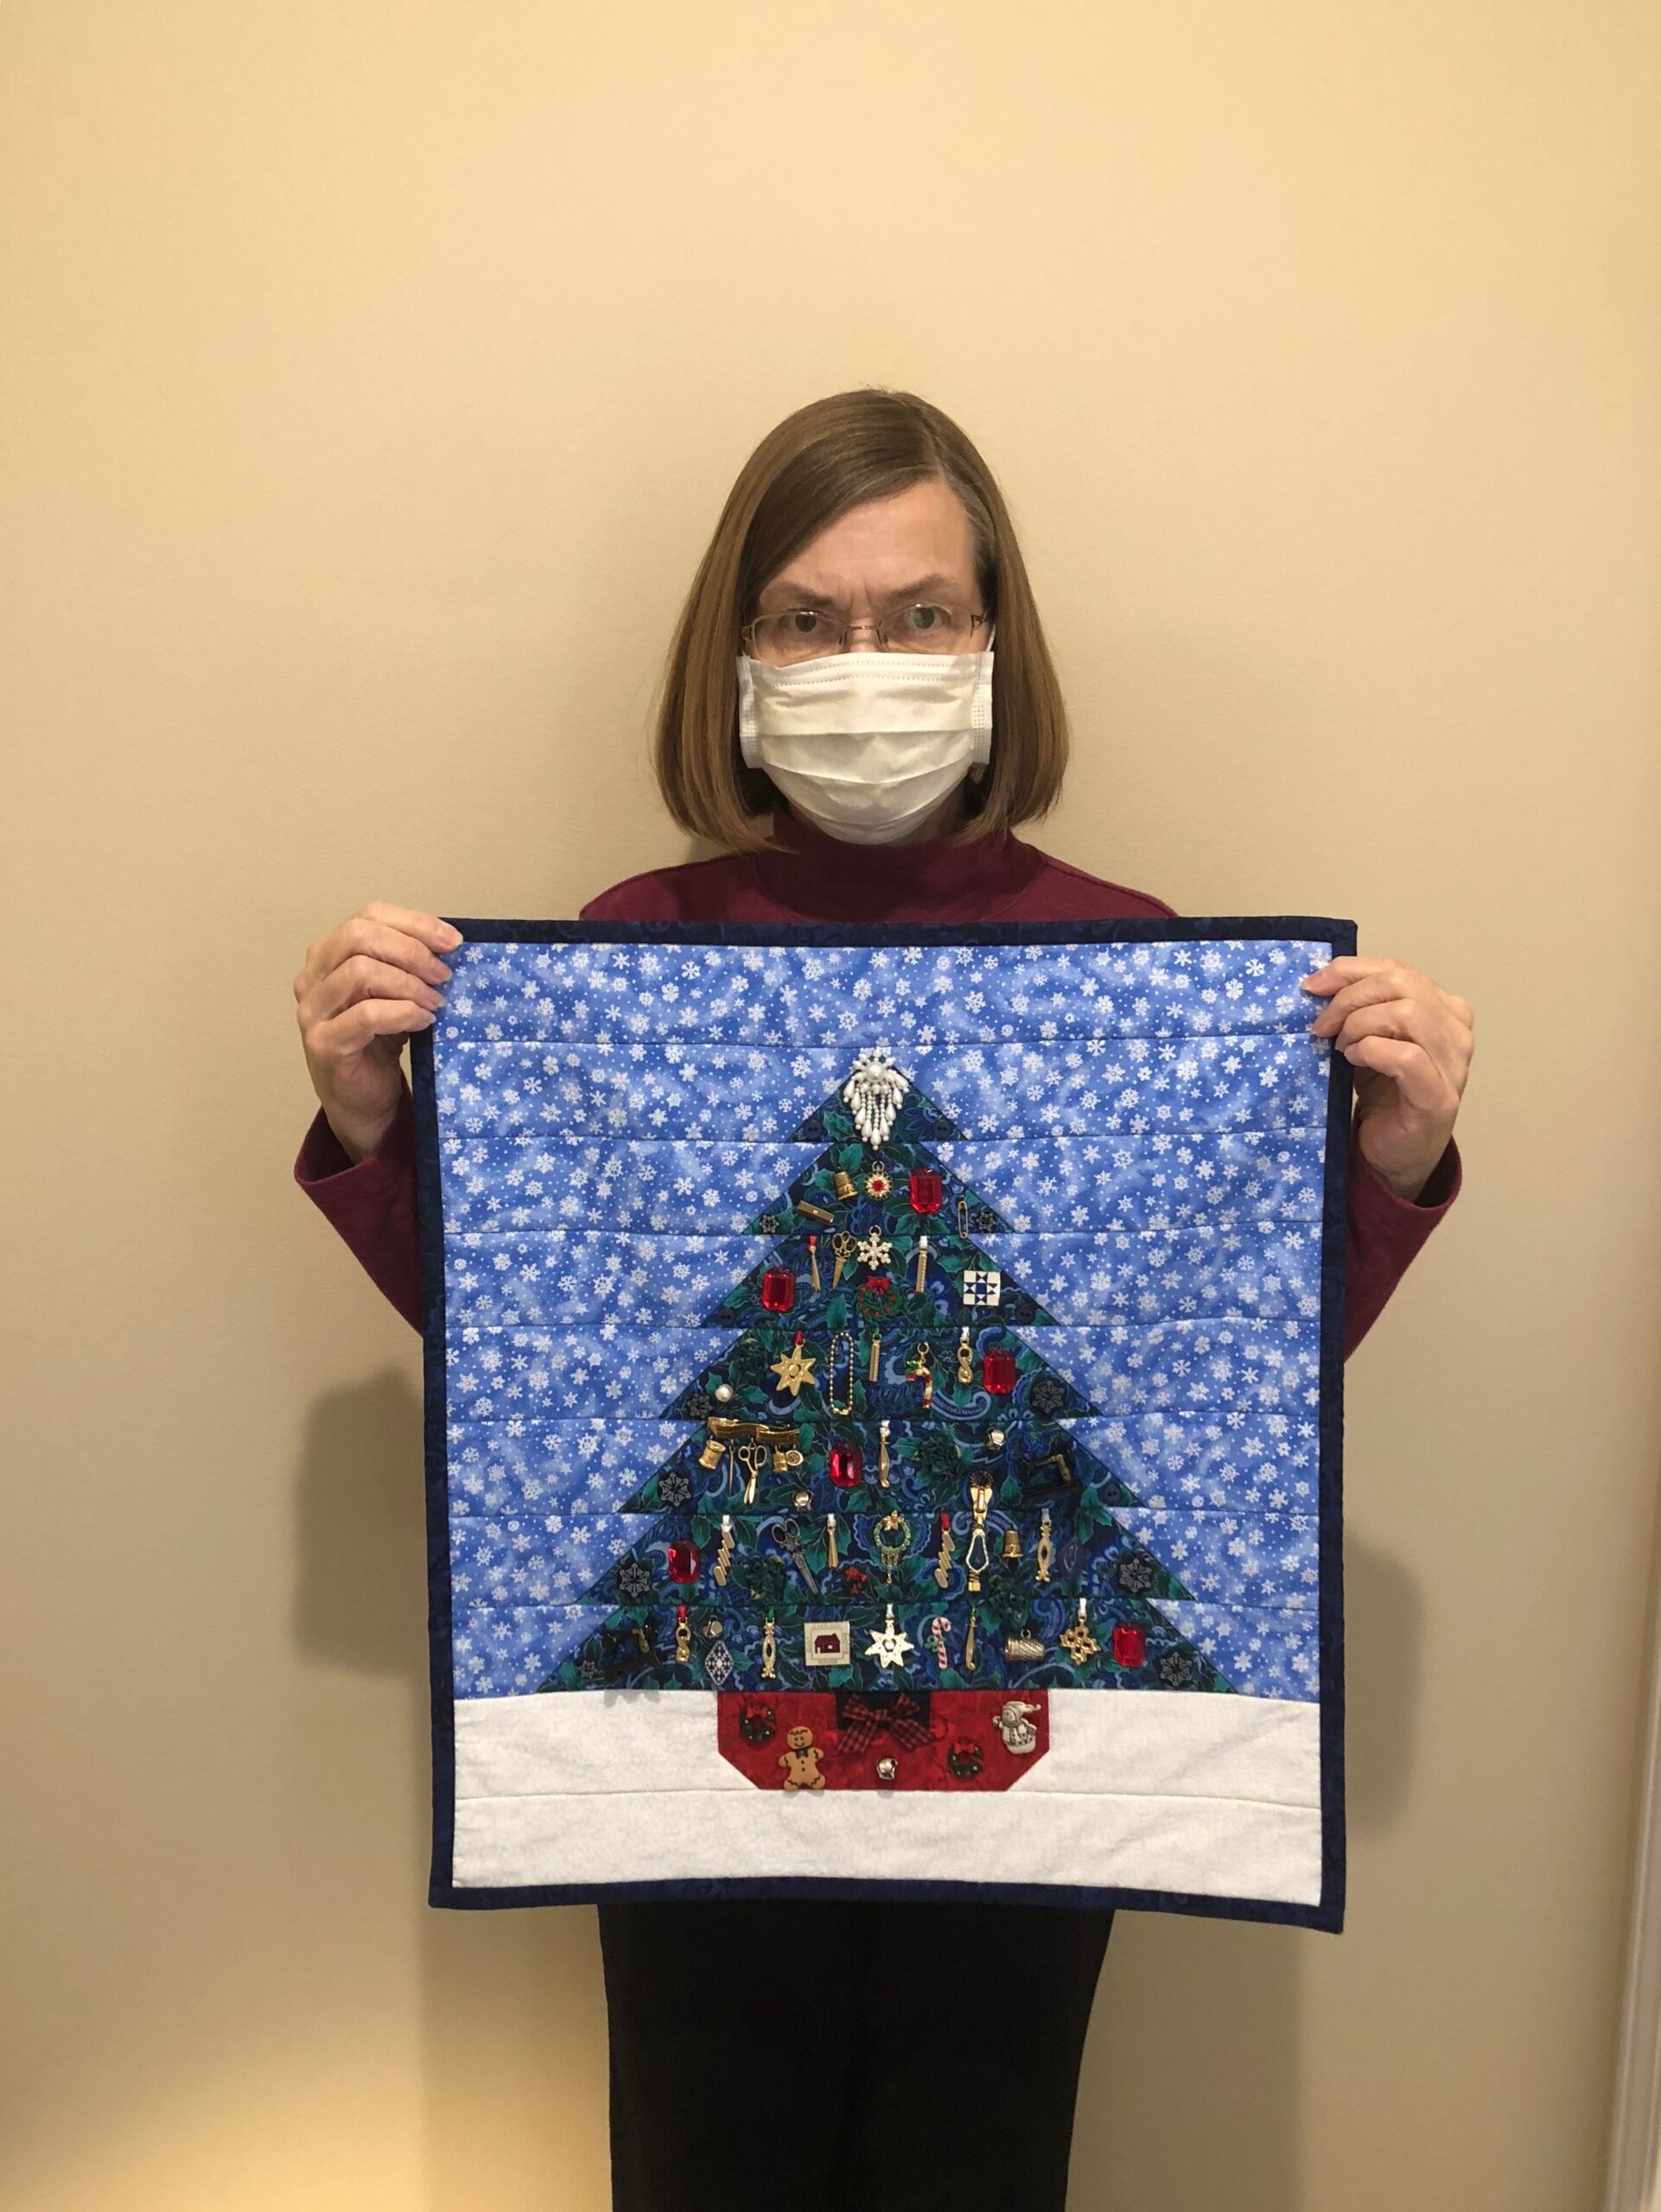 Nancy's Christmas Tree Craft- Nancy made a darling Christmas tree with sewn on ornaments, bows, and trinkets! She is one of our talented residents who has made many quilts and wanted to show off her latest masterpiece!